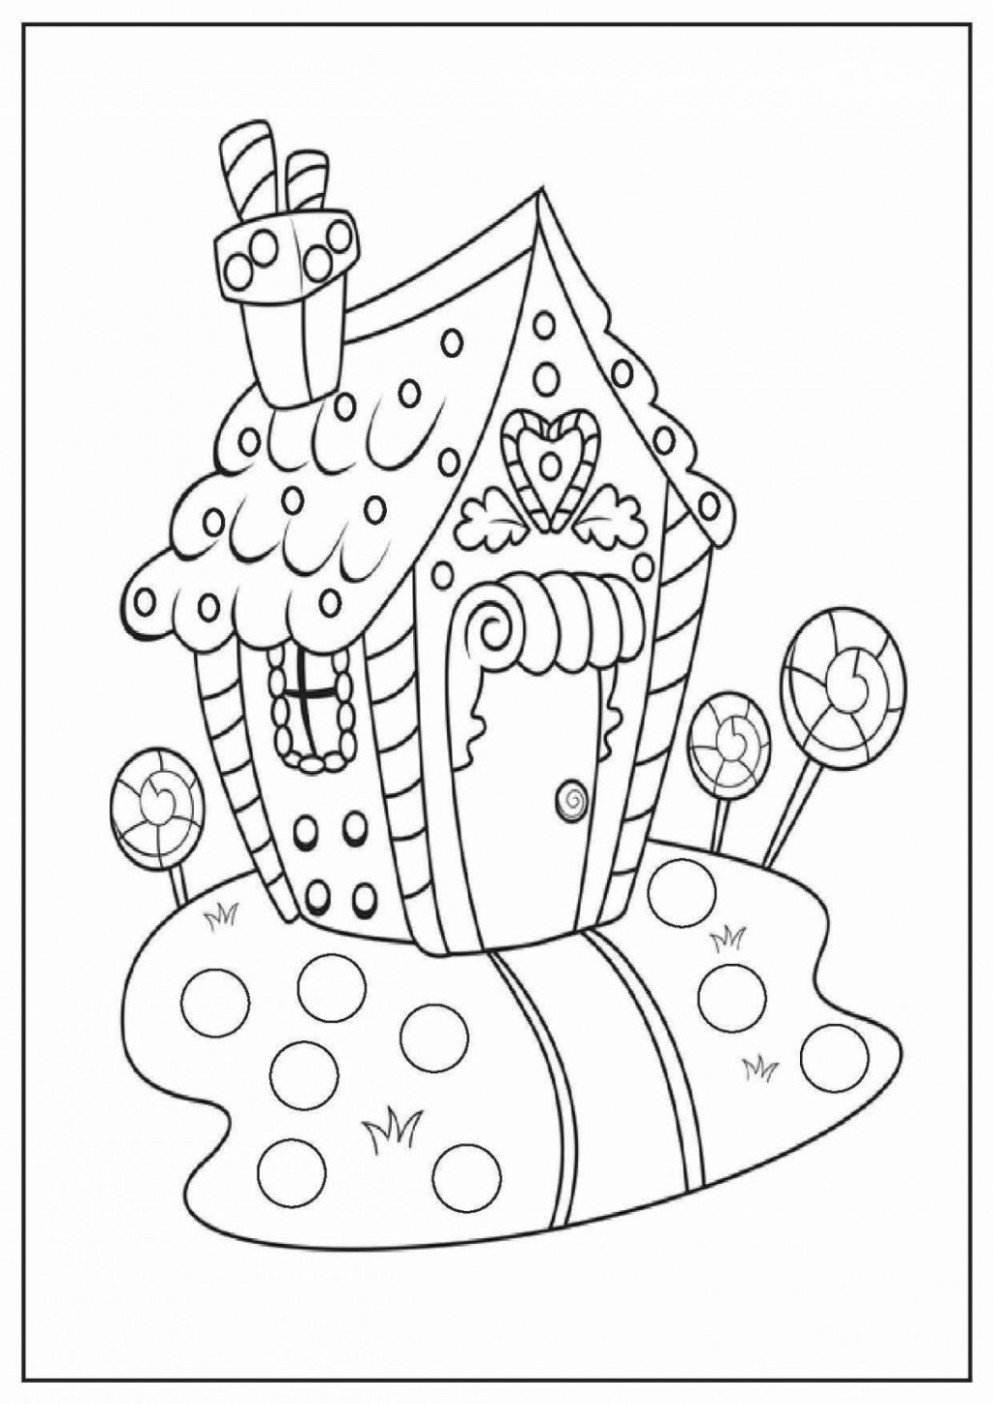 coloring page ~ Christmas Coloring Pages To Print Printable Swifte ...